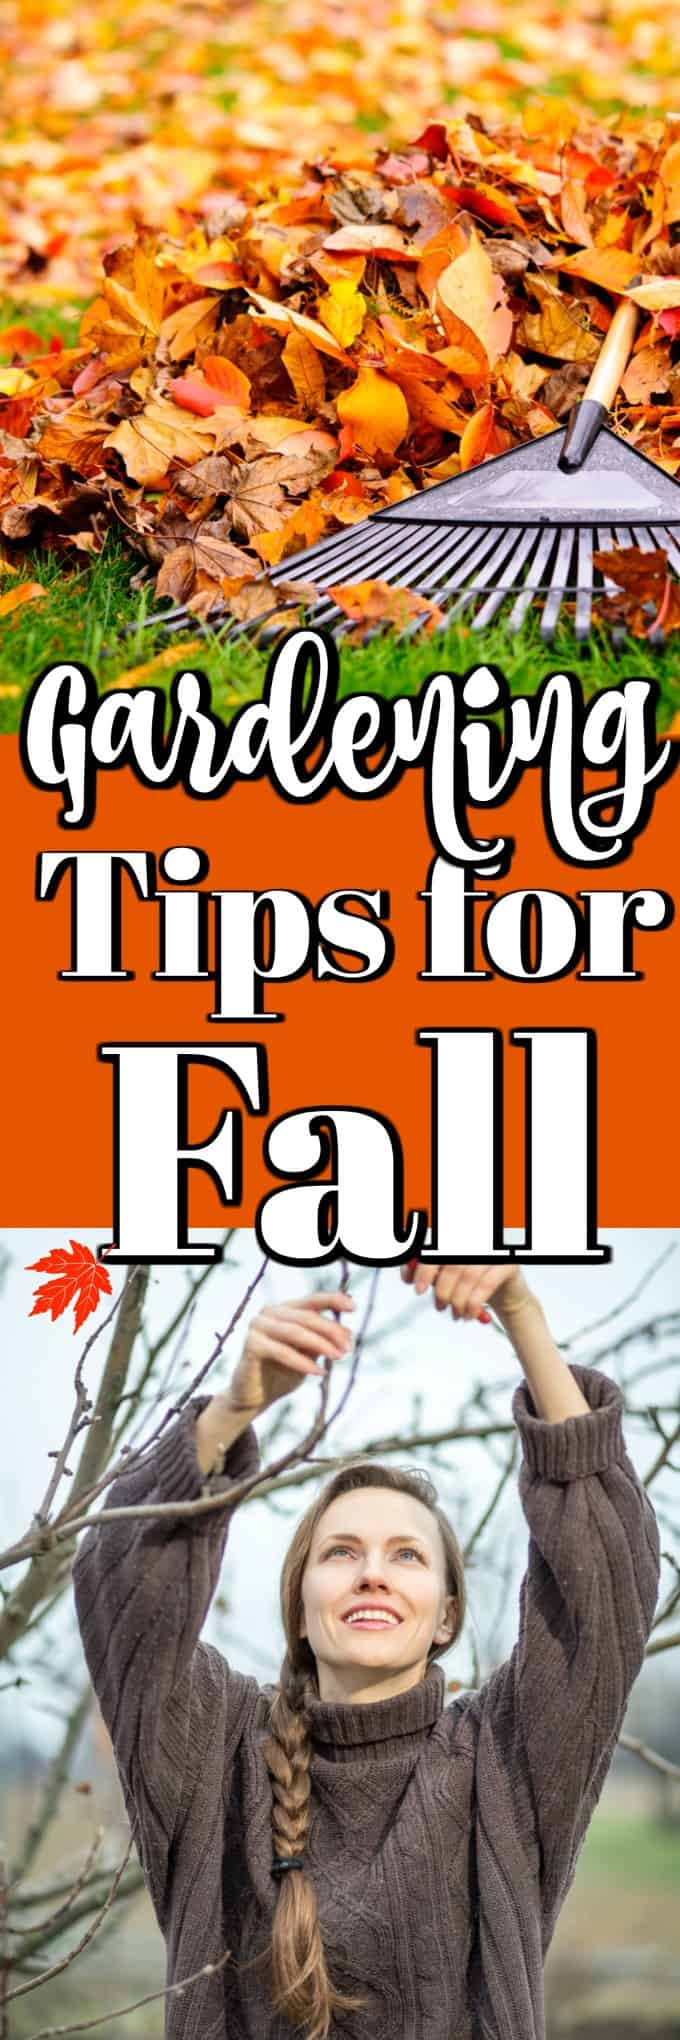 Fall Gardening Tips to Get You Ready for Winter will save you time and effort come spring and have you reaping the rewards sooner!! #fallgardening #tipsforfall #howto